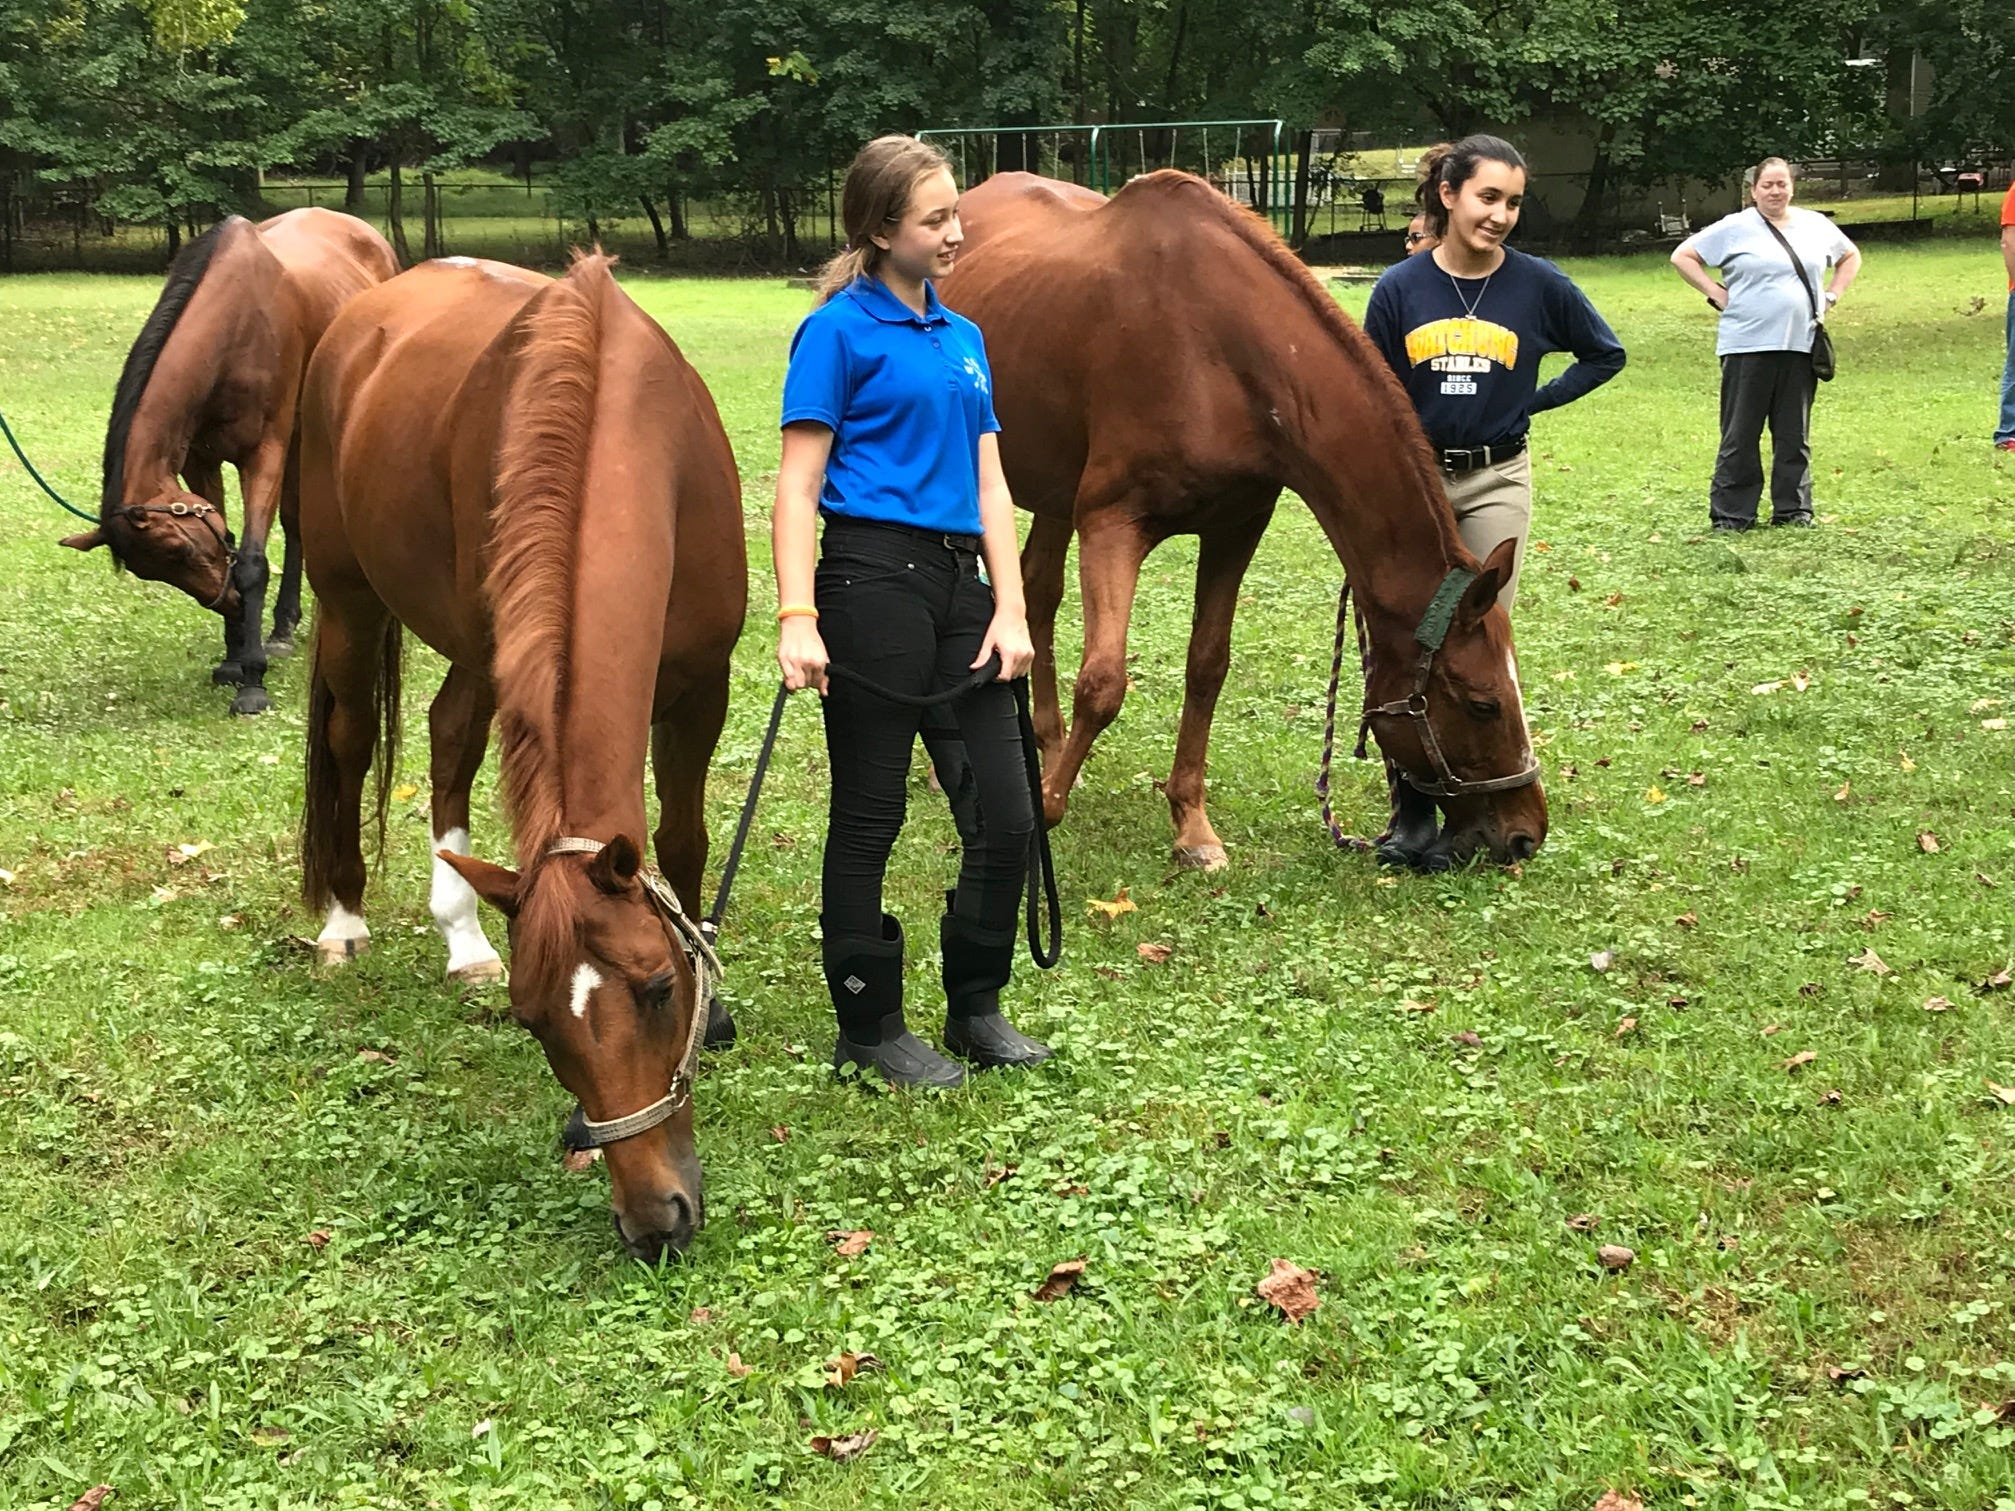 These horses were among a group of animals blessed during Sunday's Animal Initiative Committee's Celebration of Animals at Leland Avenue Park in Plainfield